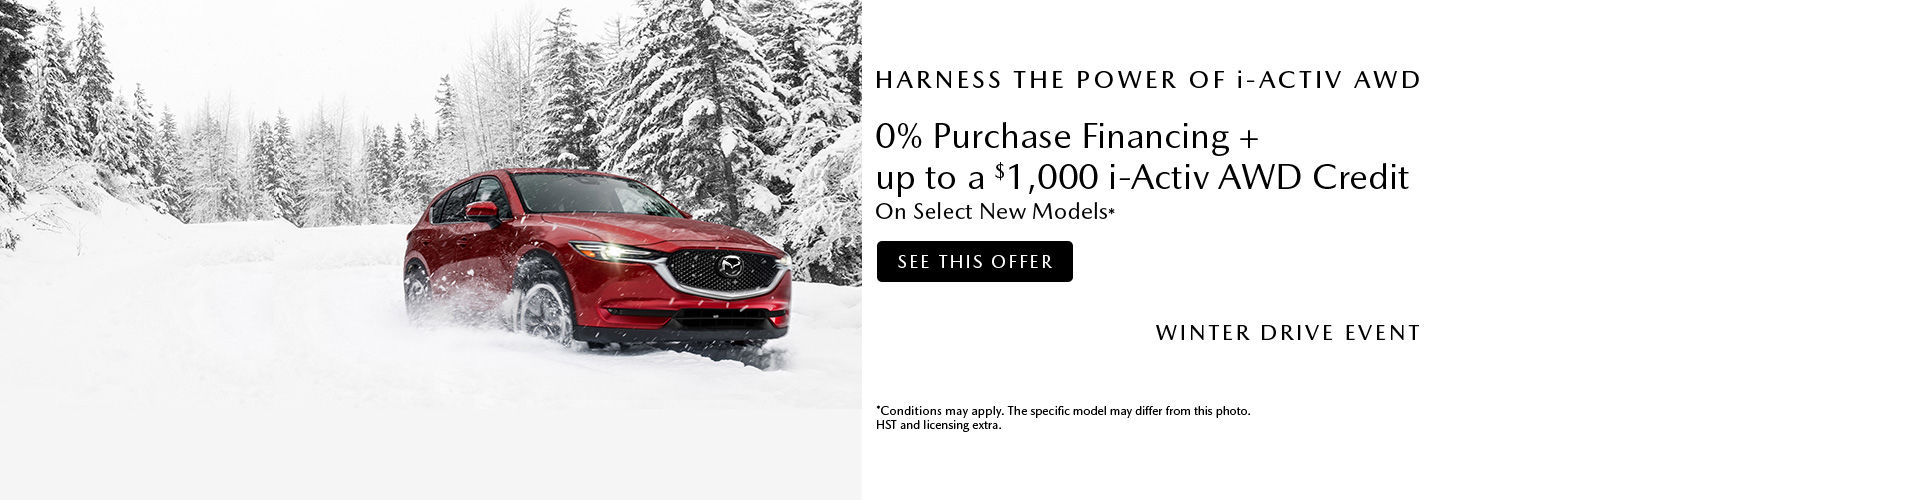 Mazda Winter Drive Event